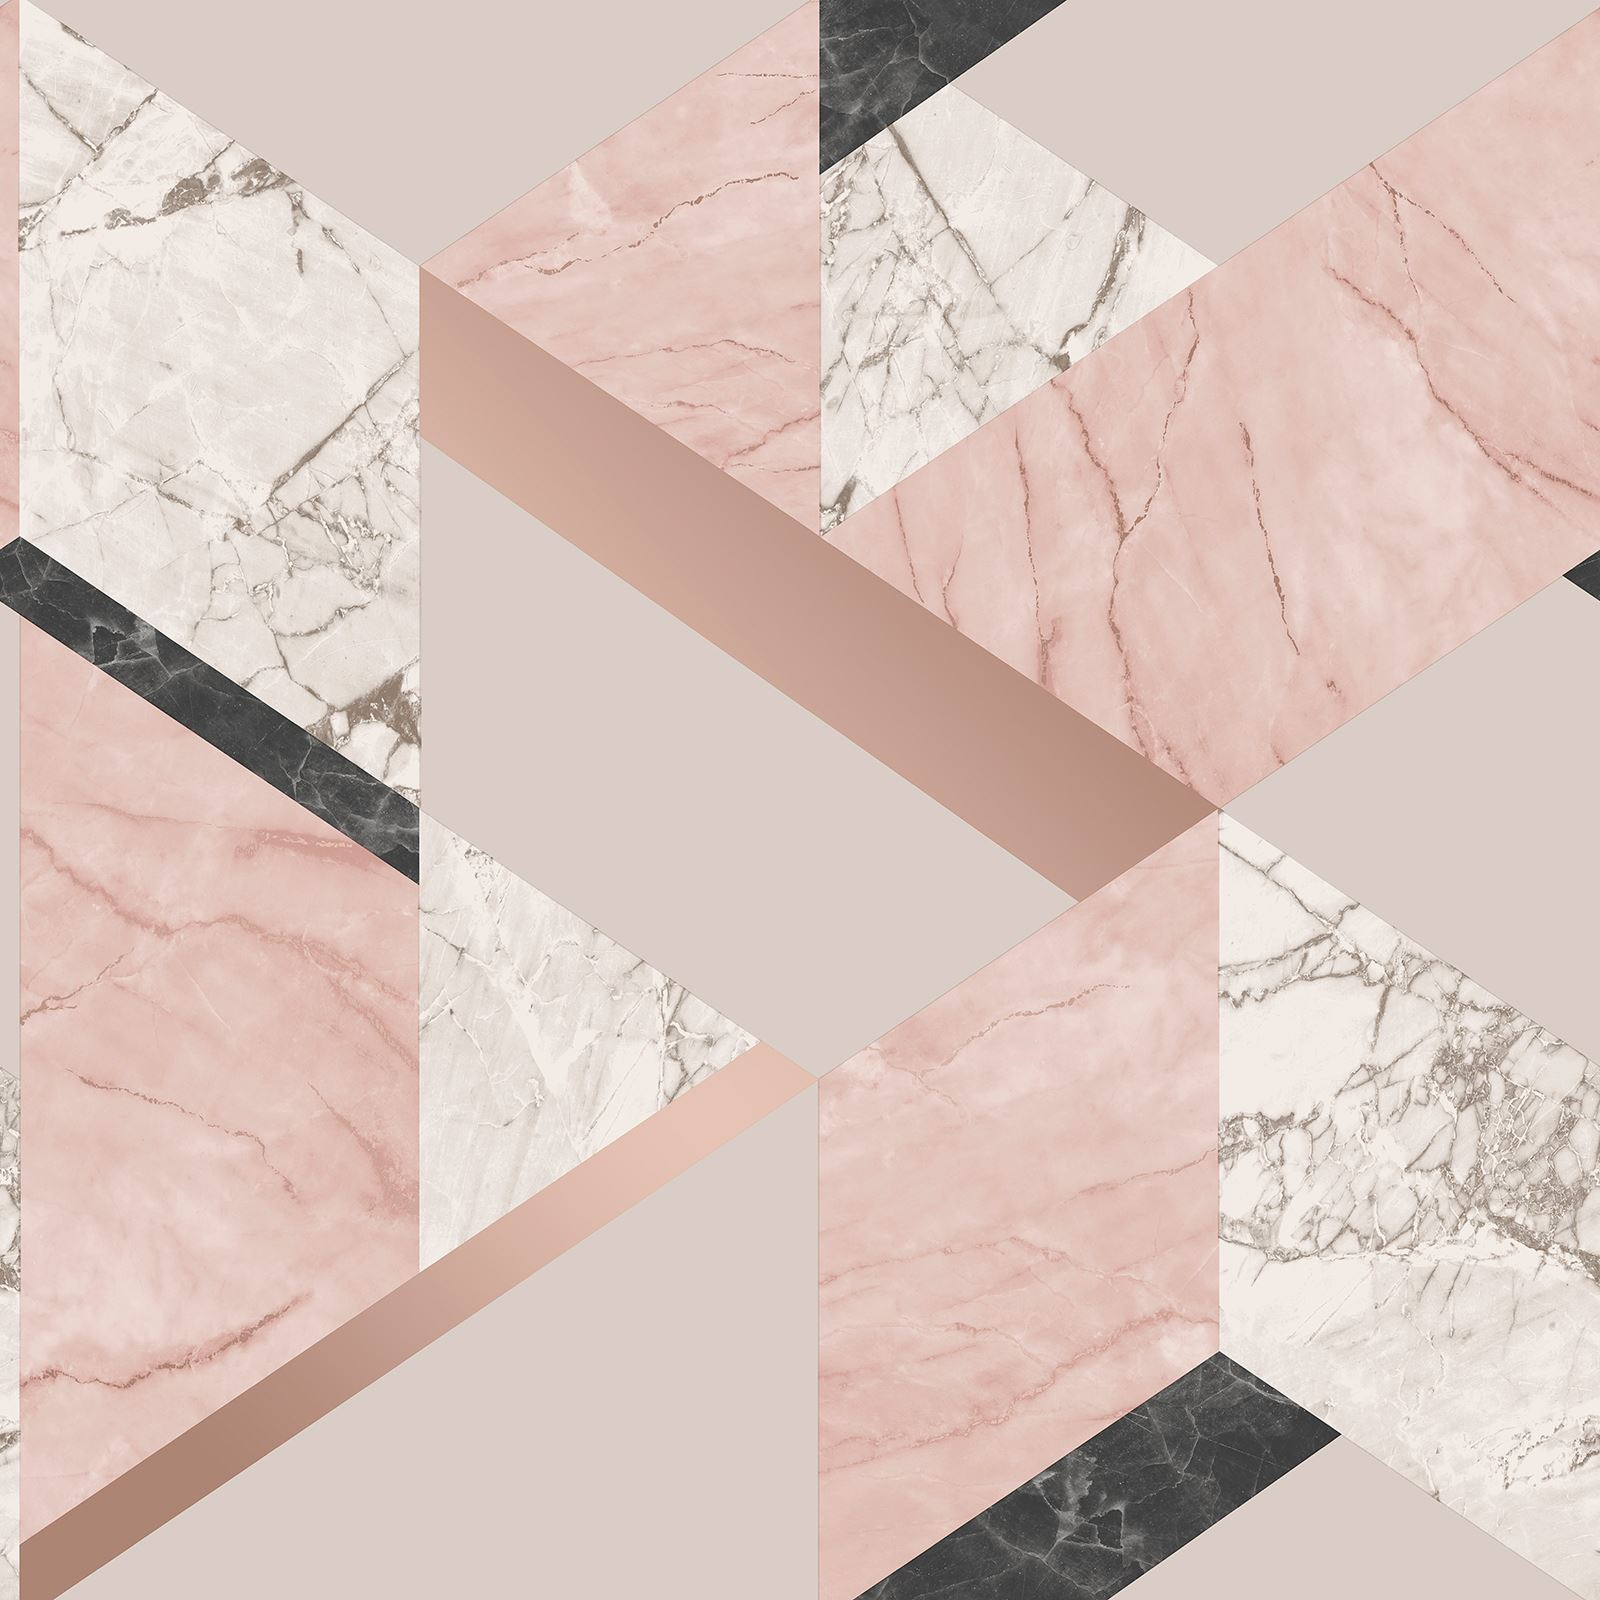 Girls Rose Gold Wallpaper: GEOMETRIC MARBLE WALLPAPER BLUSH PINK ROSE GOLD